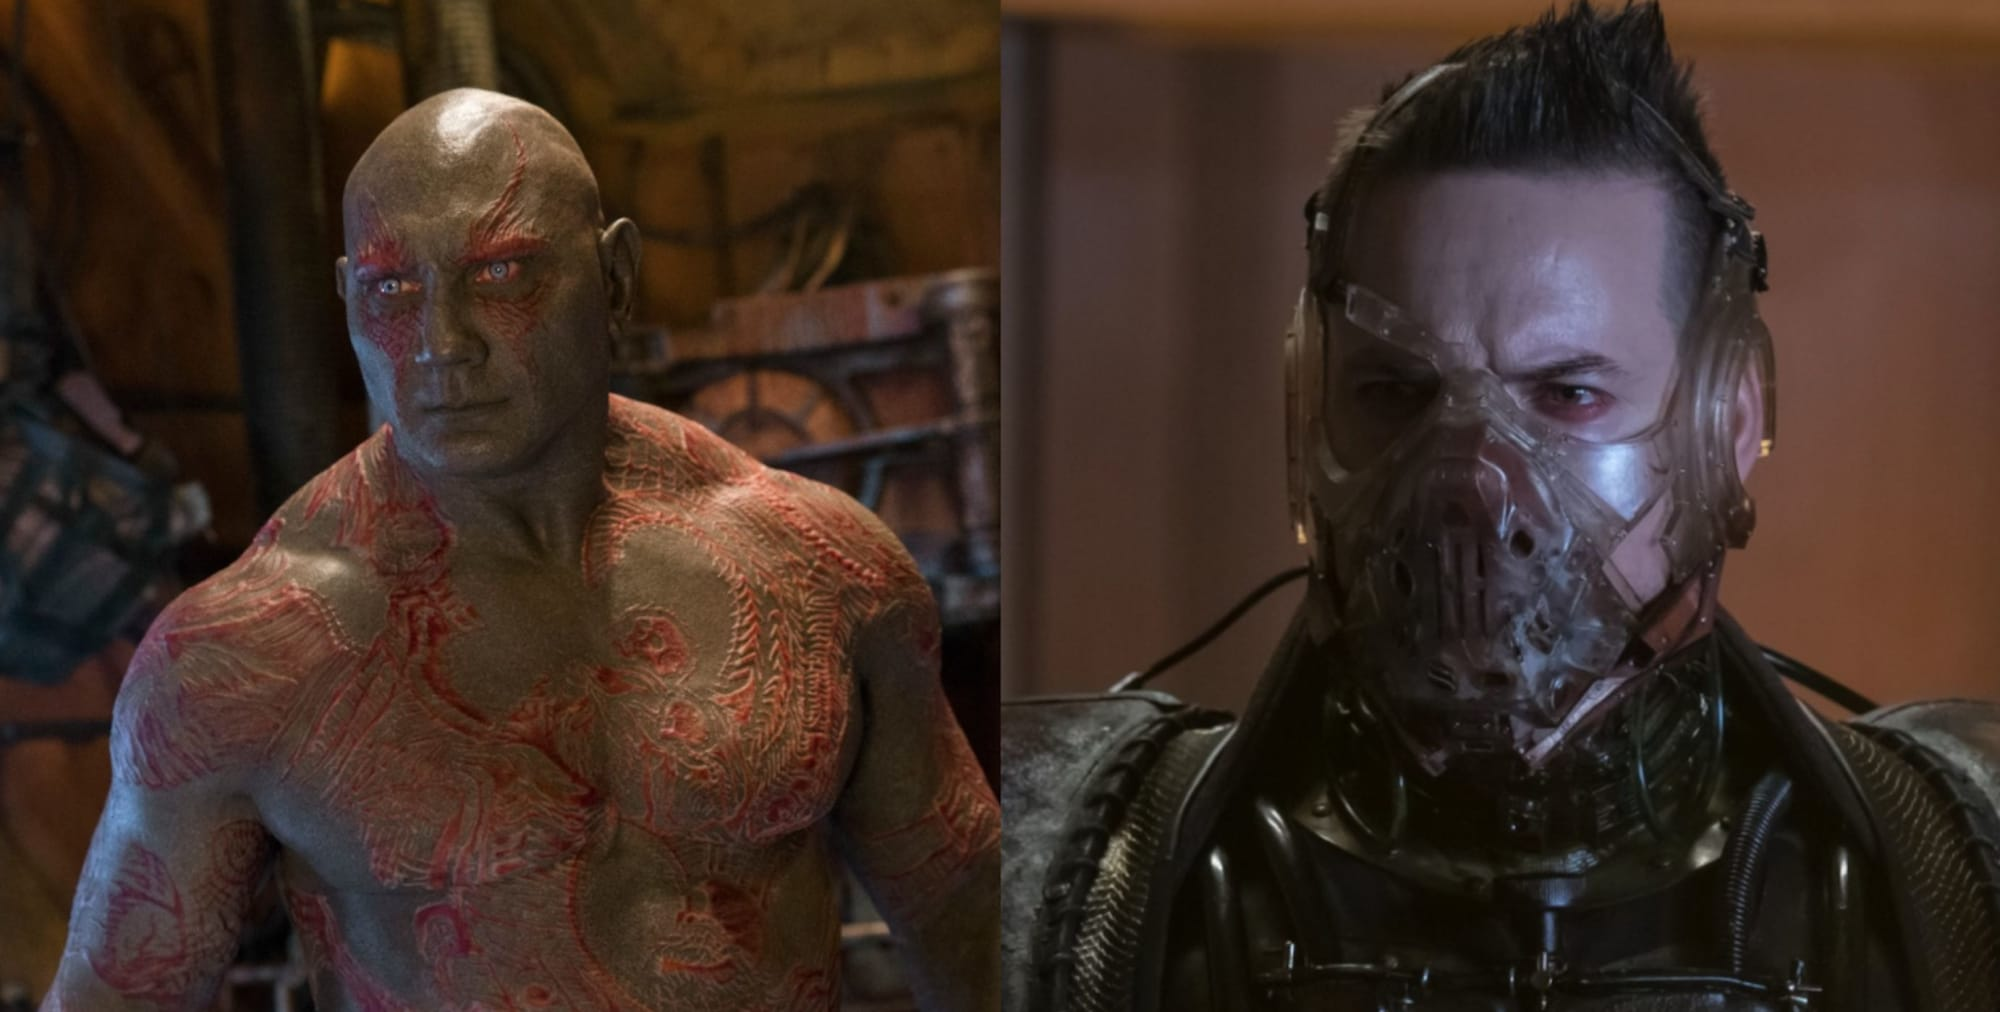 Dave Bautista auditioned to play Bane in The Batman—Just how many villains are in this thing?